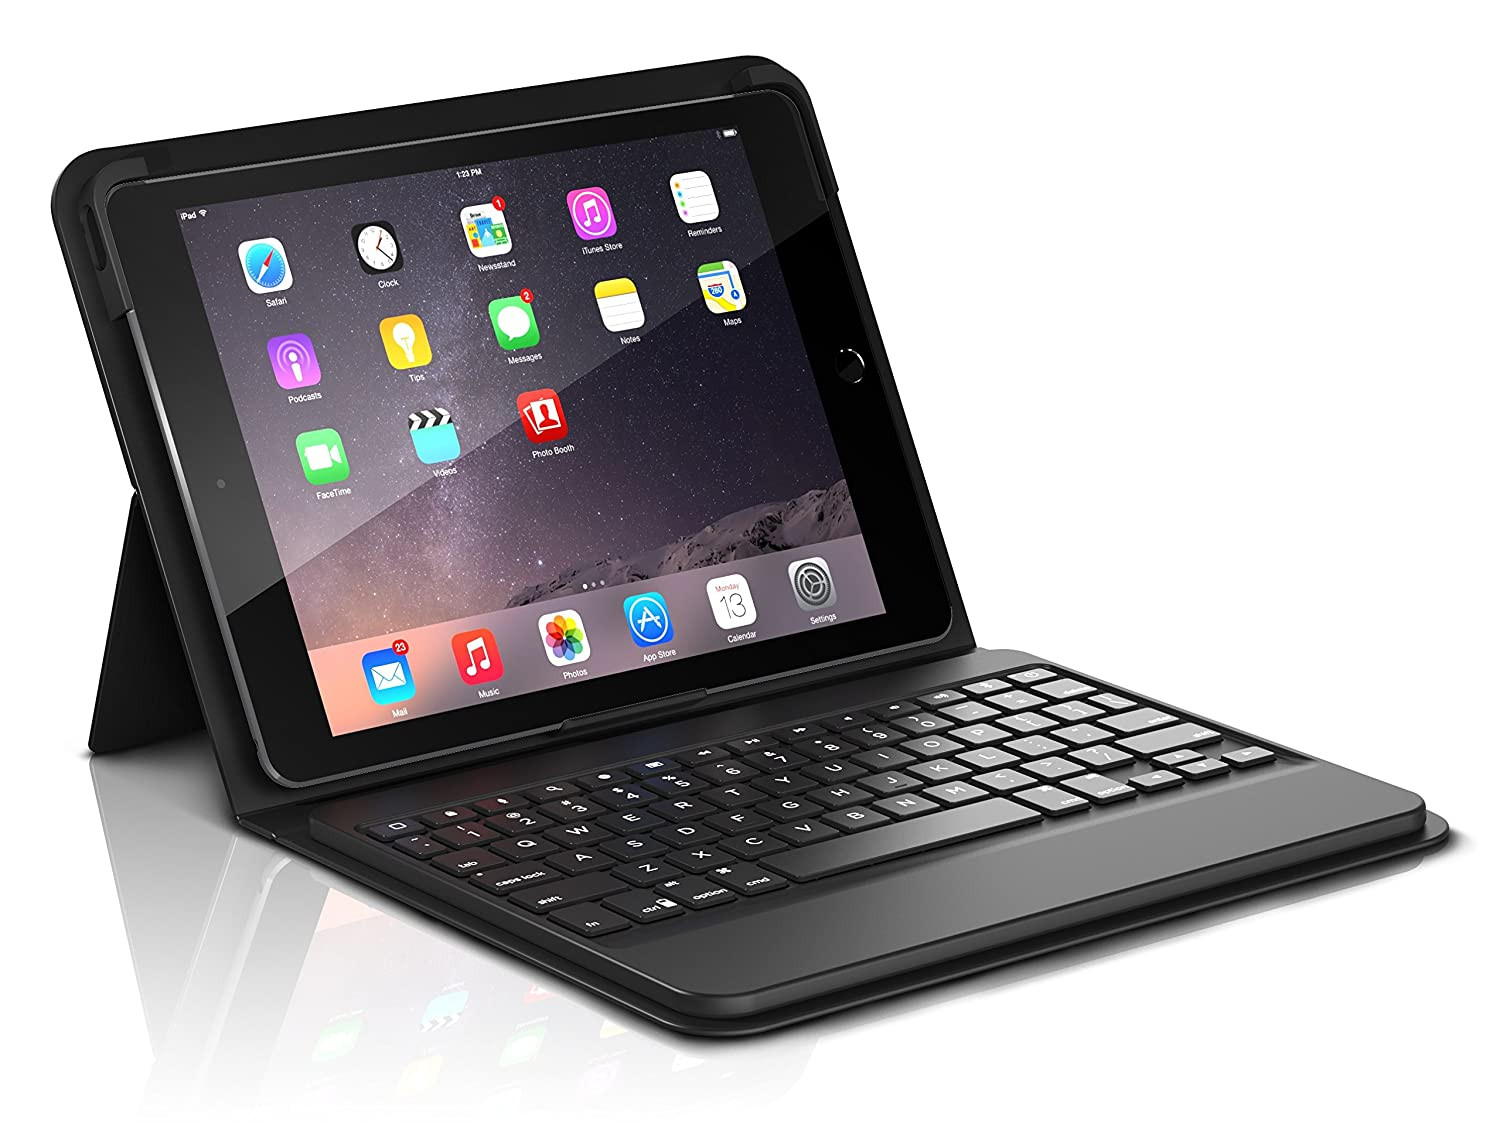 new concept 2adaf b8b14 ZAGG ID8BSF-BB0 Messenger Folio Case and Non-Backlit Bluetooth Keyboard for  Apple iPad Pro 9.7, iPad 9.7, iPad Air and iPad Air 2 - Compatible with ...